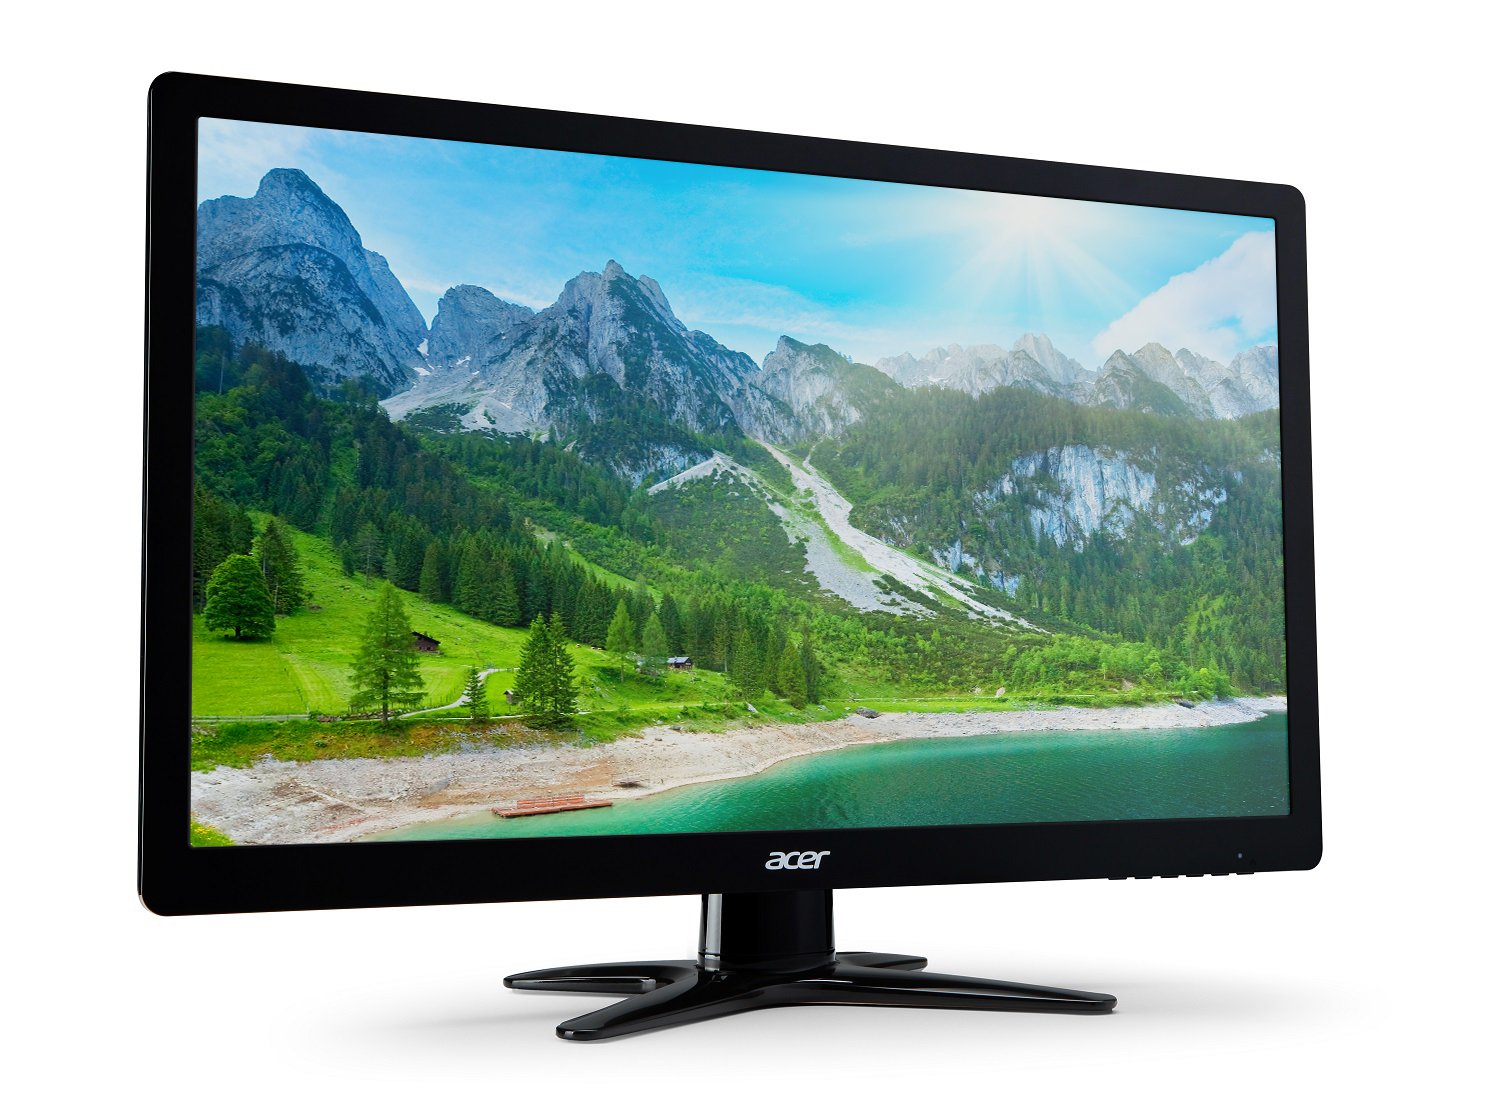 Acer G206HQL bd 19.5-Inch LED Computer Monitor Back-Lit Widescreen Display by Acer (Image #3)